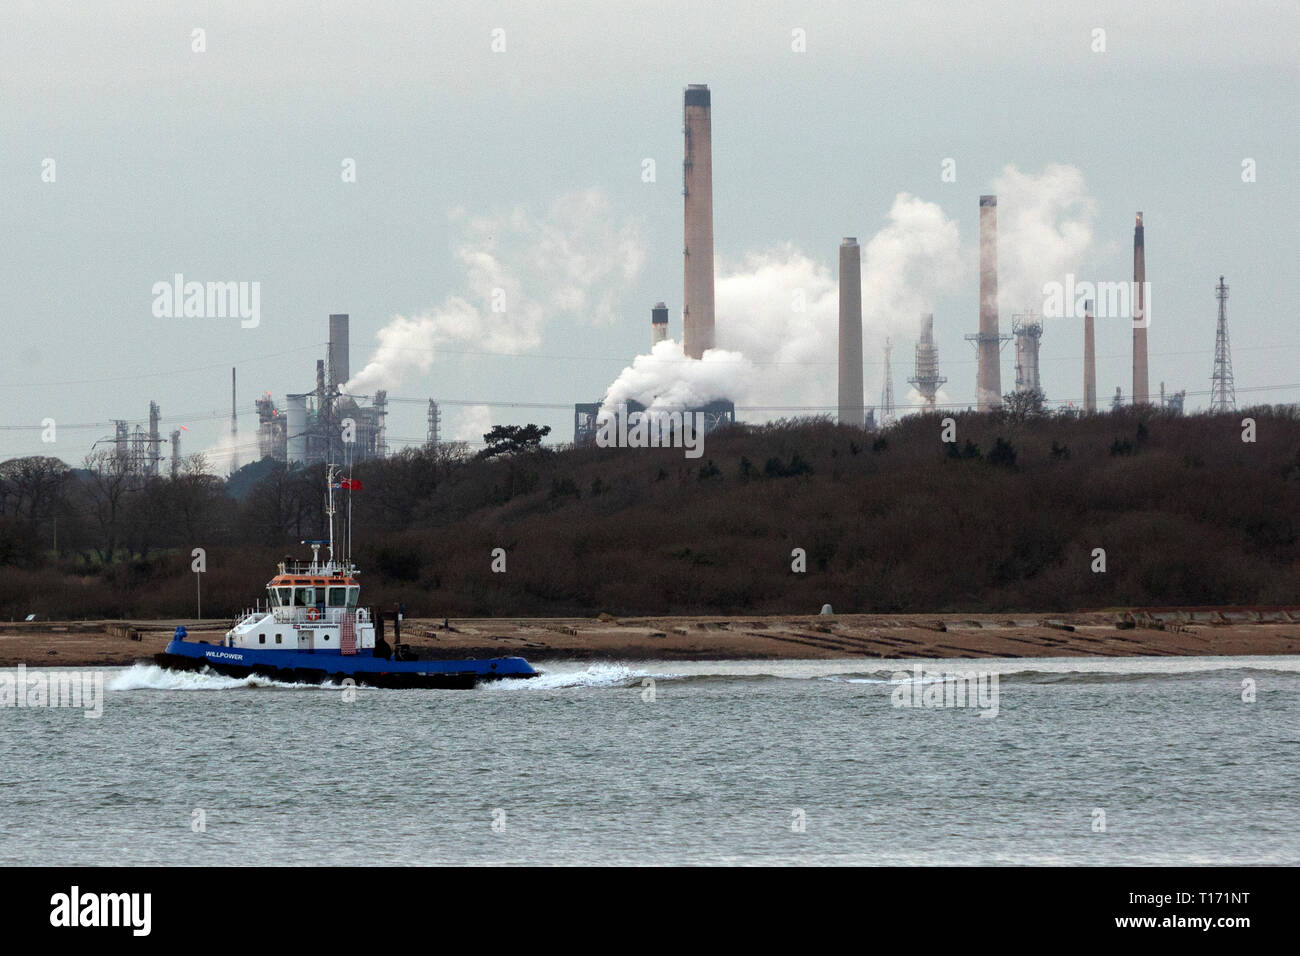 Tug,Willpower,Williams,Shipping,Company,Fawley,Oil,Refinery,The Solent,Southampton,Hampshire,England,UK, - Stock Image